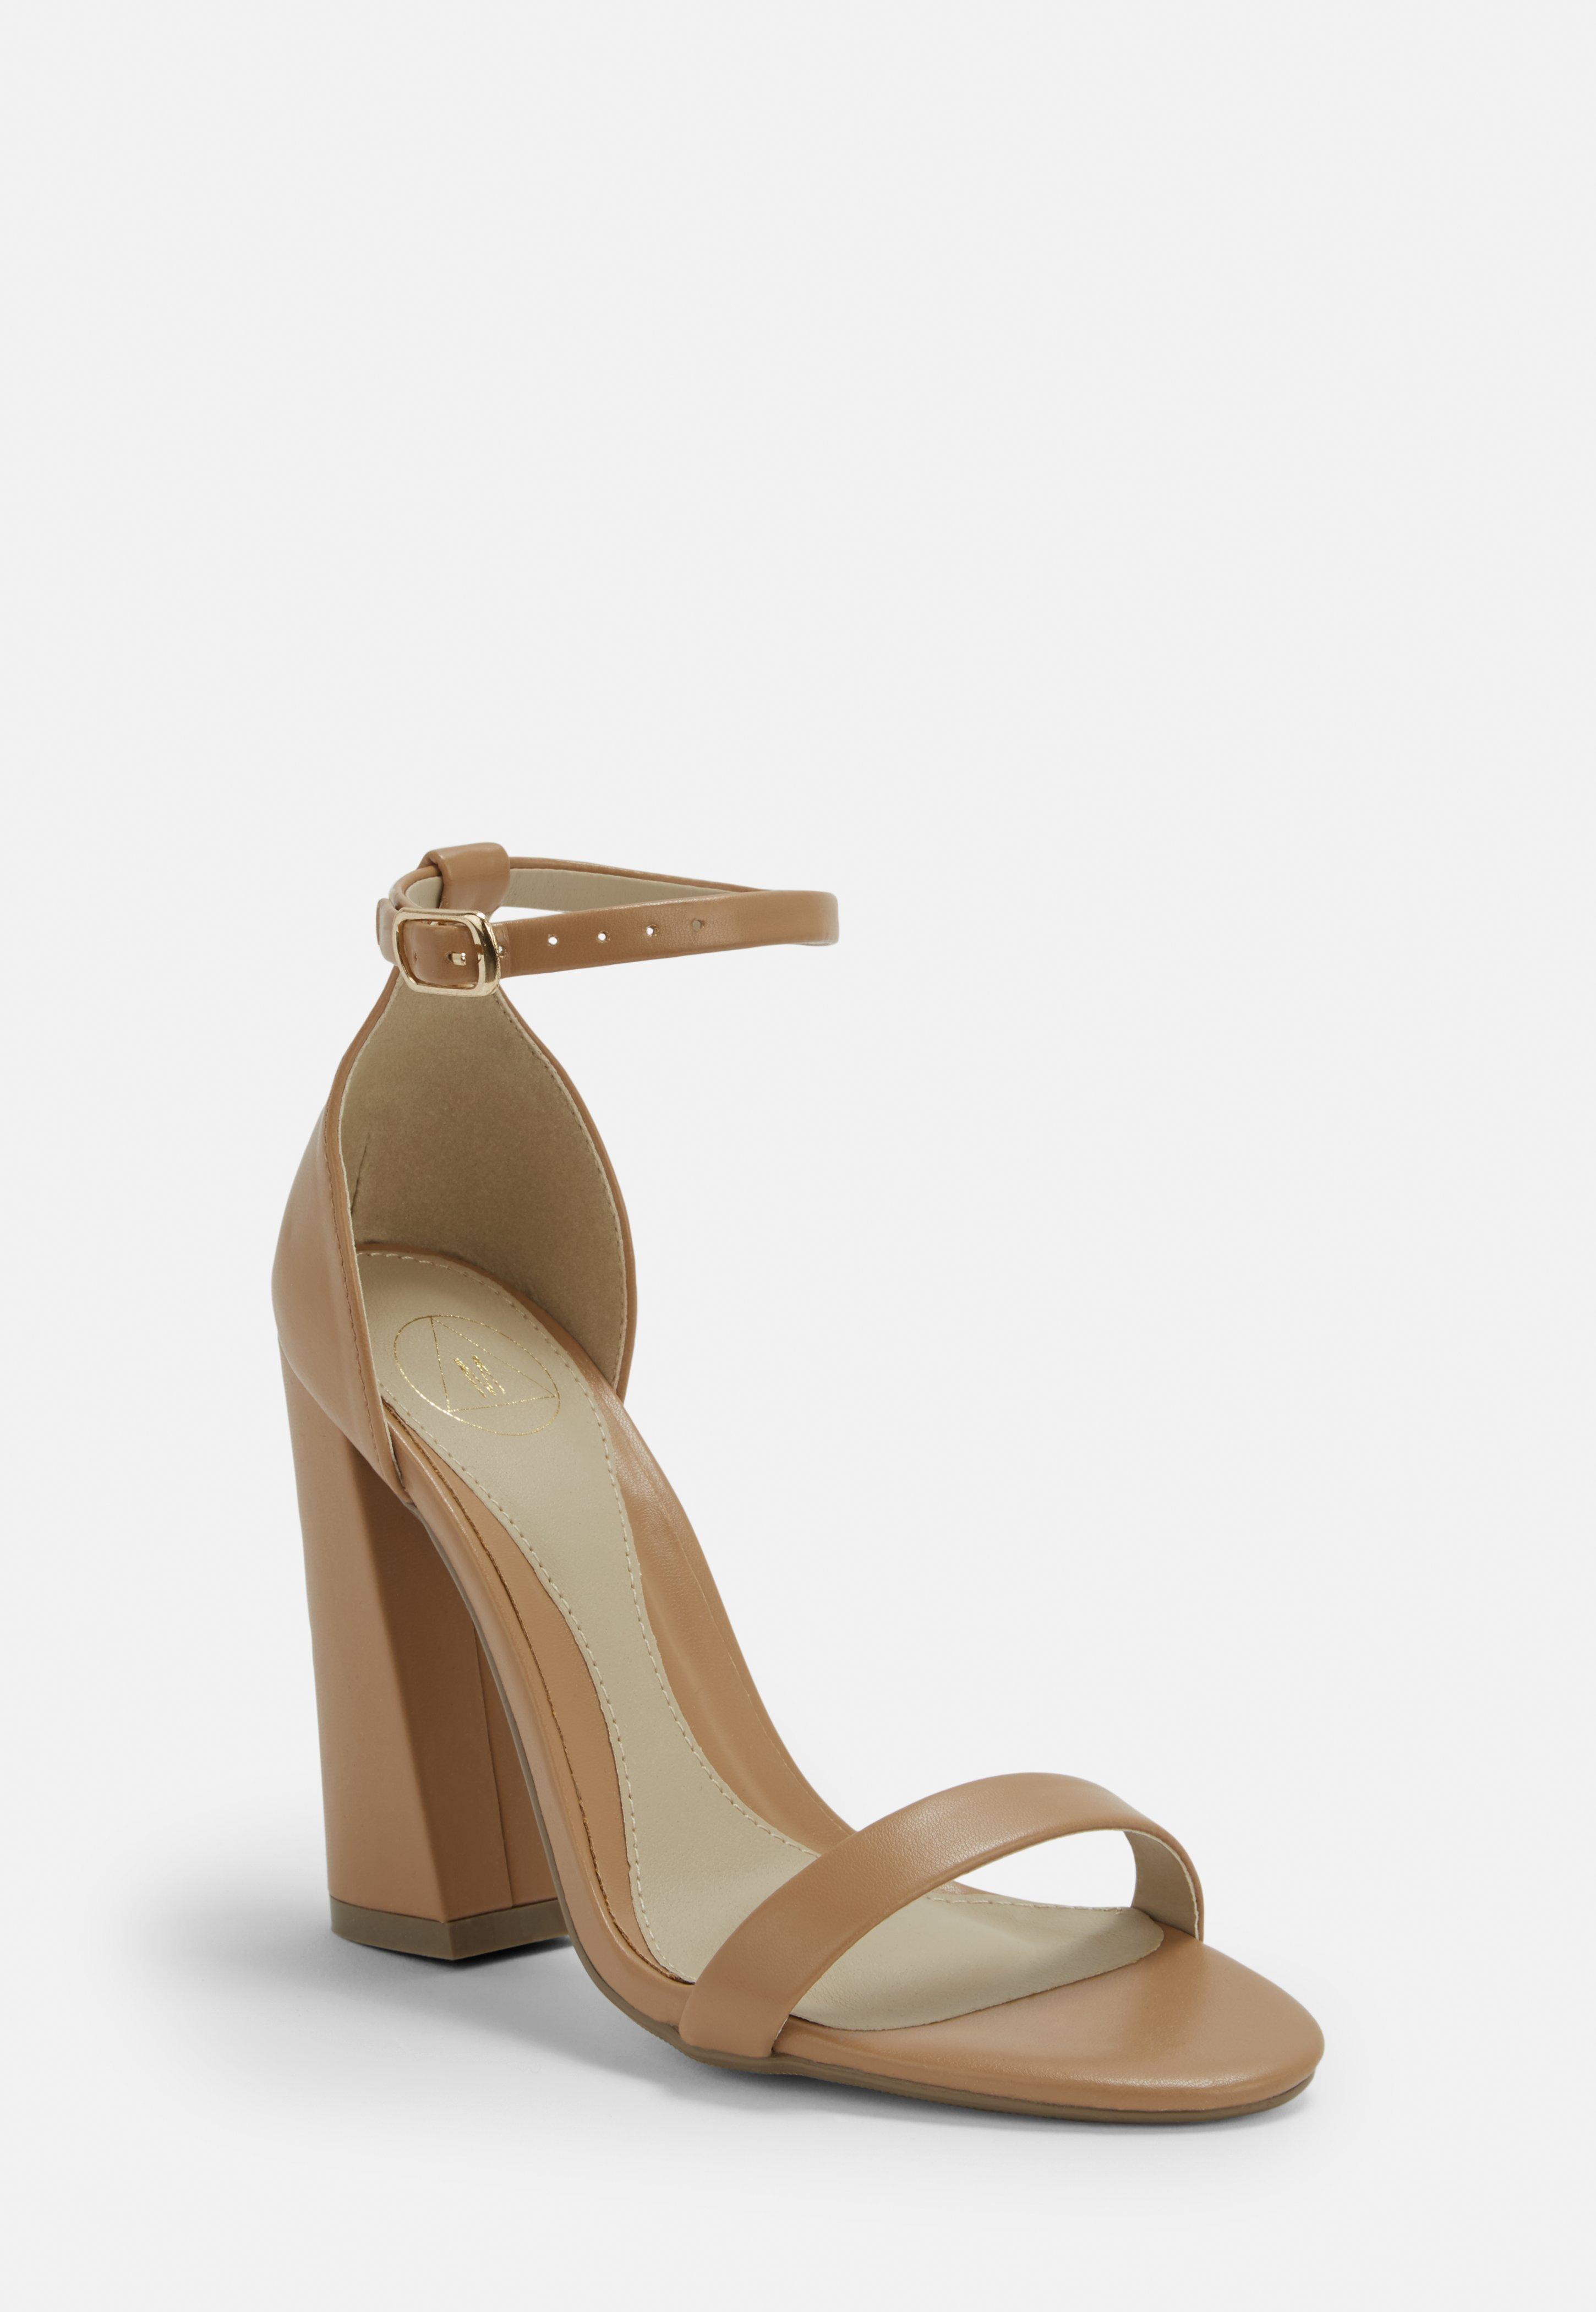 5283f4931fbc12 barely-there-high-heels-mit-blockabsatz-in-taupe.jpg